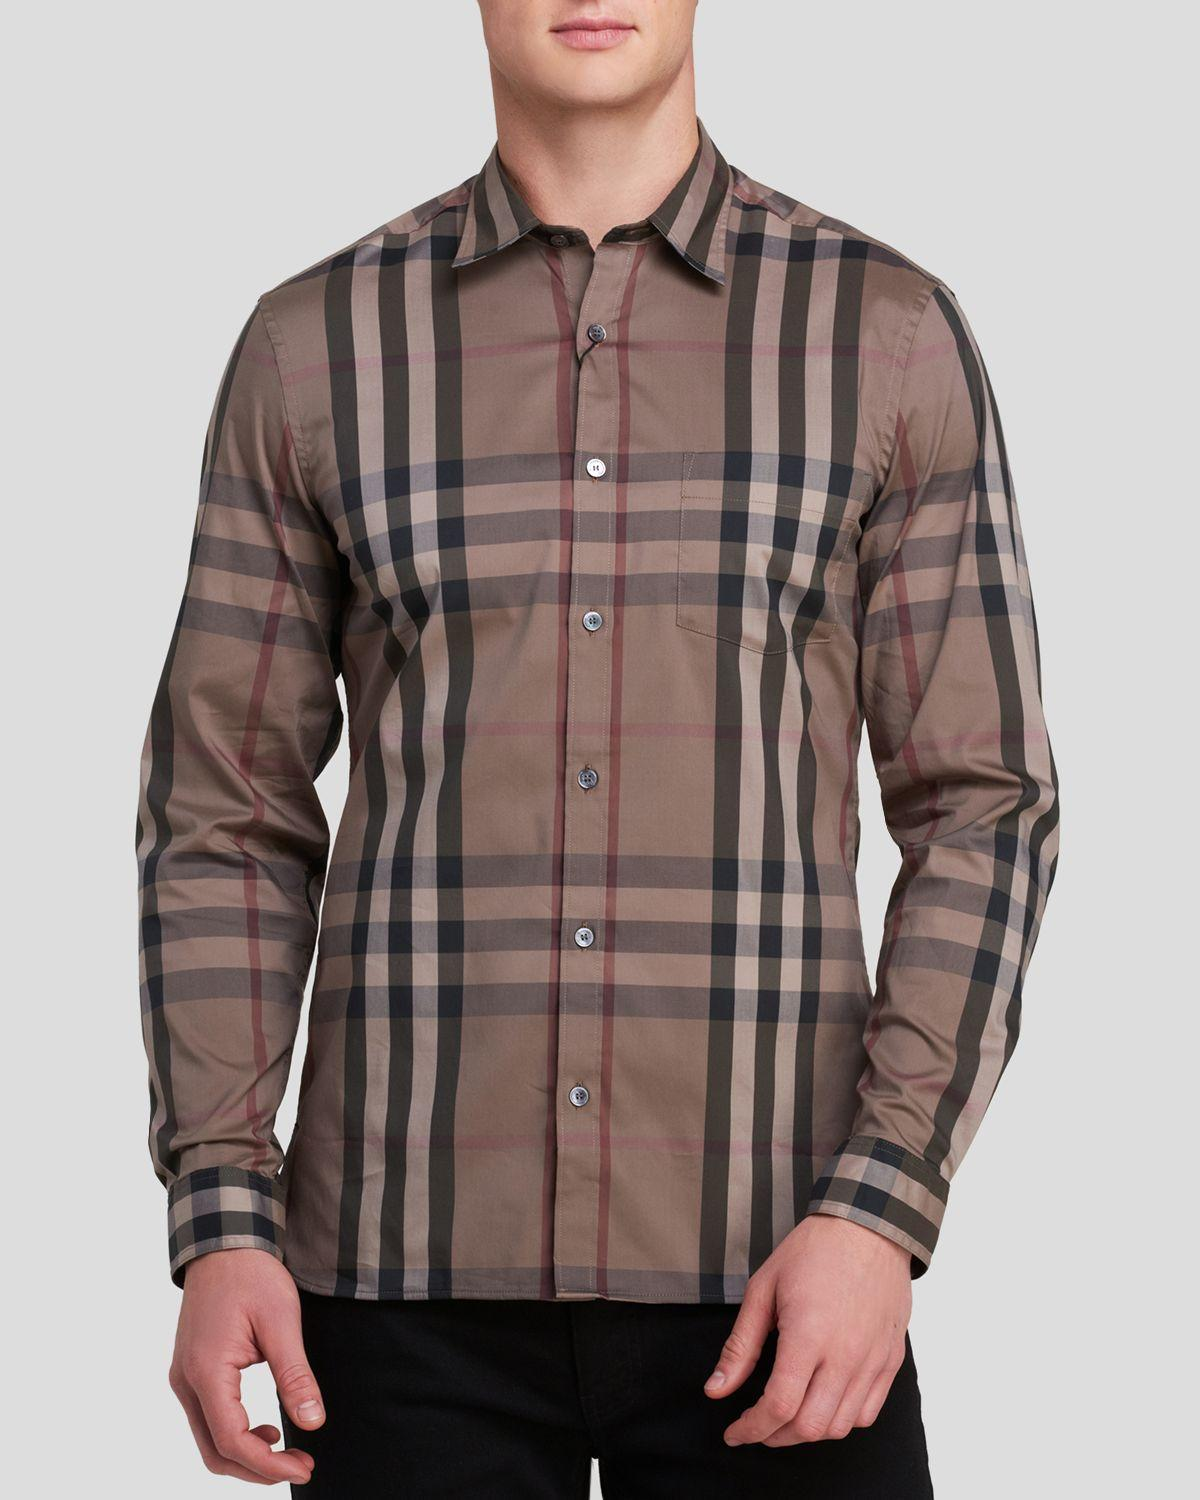 693a5f62a146c1 Burberry Nelson Stretch Button-down Shirt - Slim Fit in Brown for ...